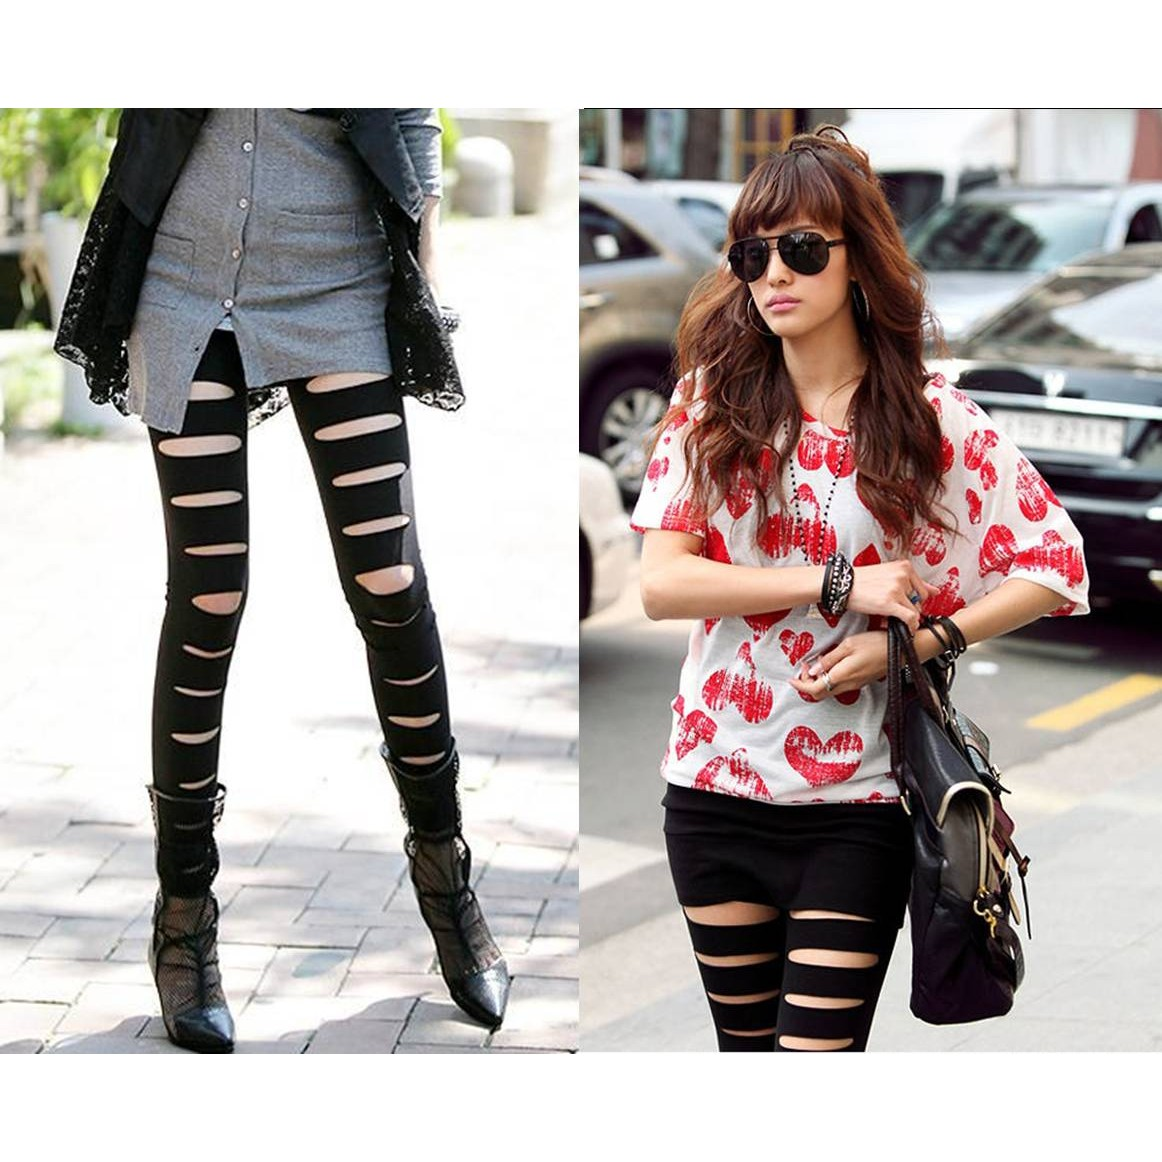 Ripped Cotton Stripes Leggings Tights - B806#